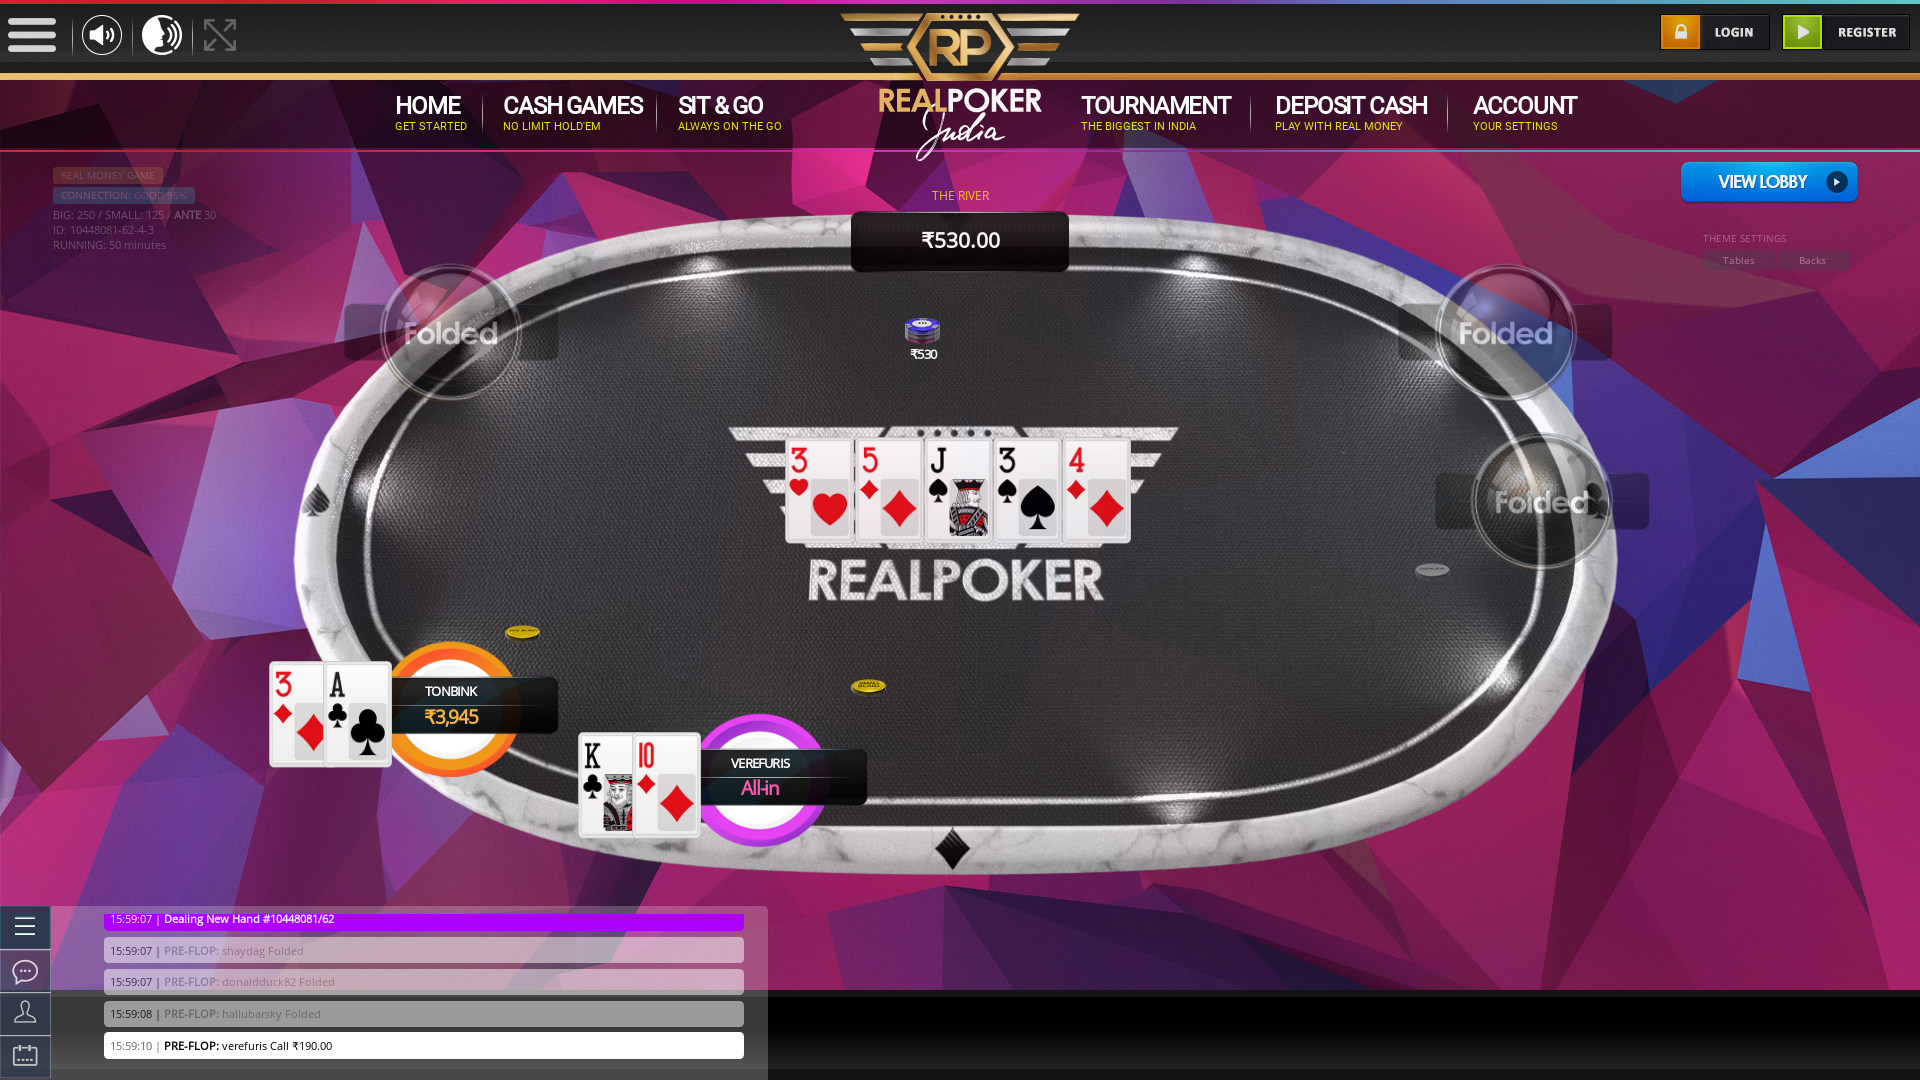 Online poker on a 10 player table in the 50th minute match up